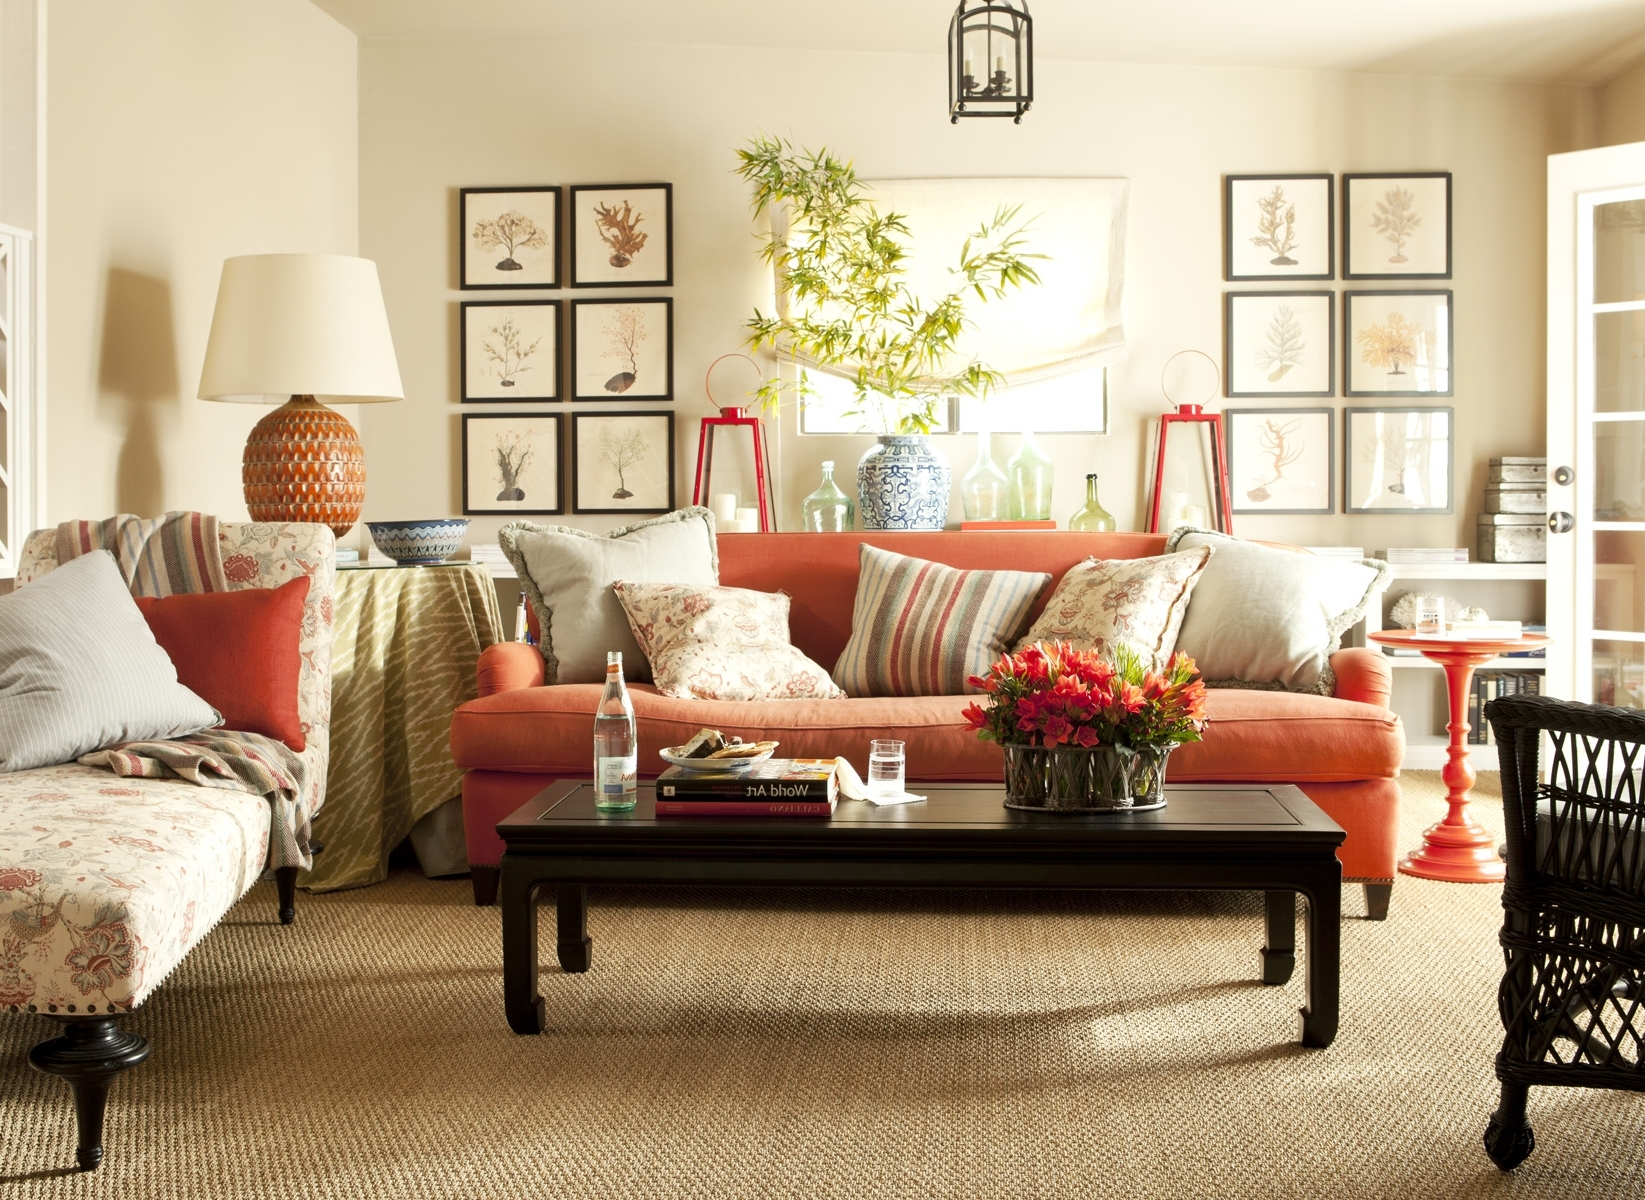 Most Recently Released Colorful Sofas And Chairs In Living Room: Living Room Design Ideas Bright Colorful Sofa Design (View 2 of 15)